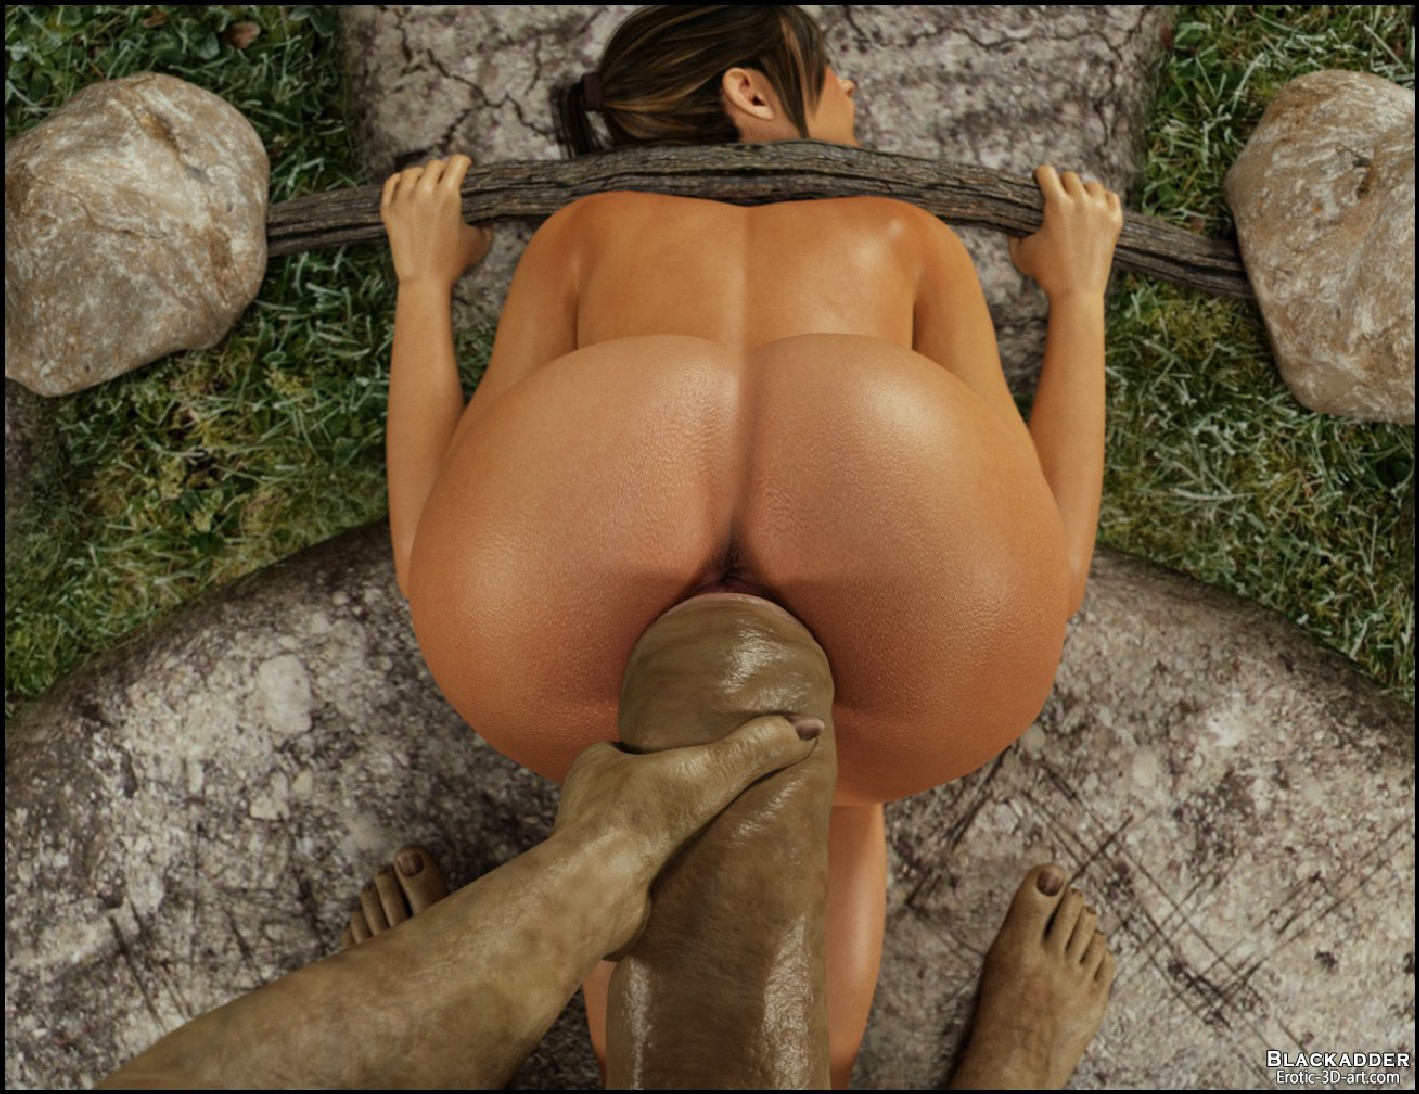 Free3d monster pron gif exposed movie